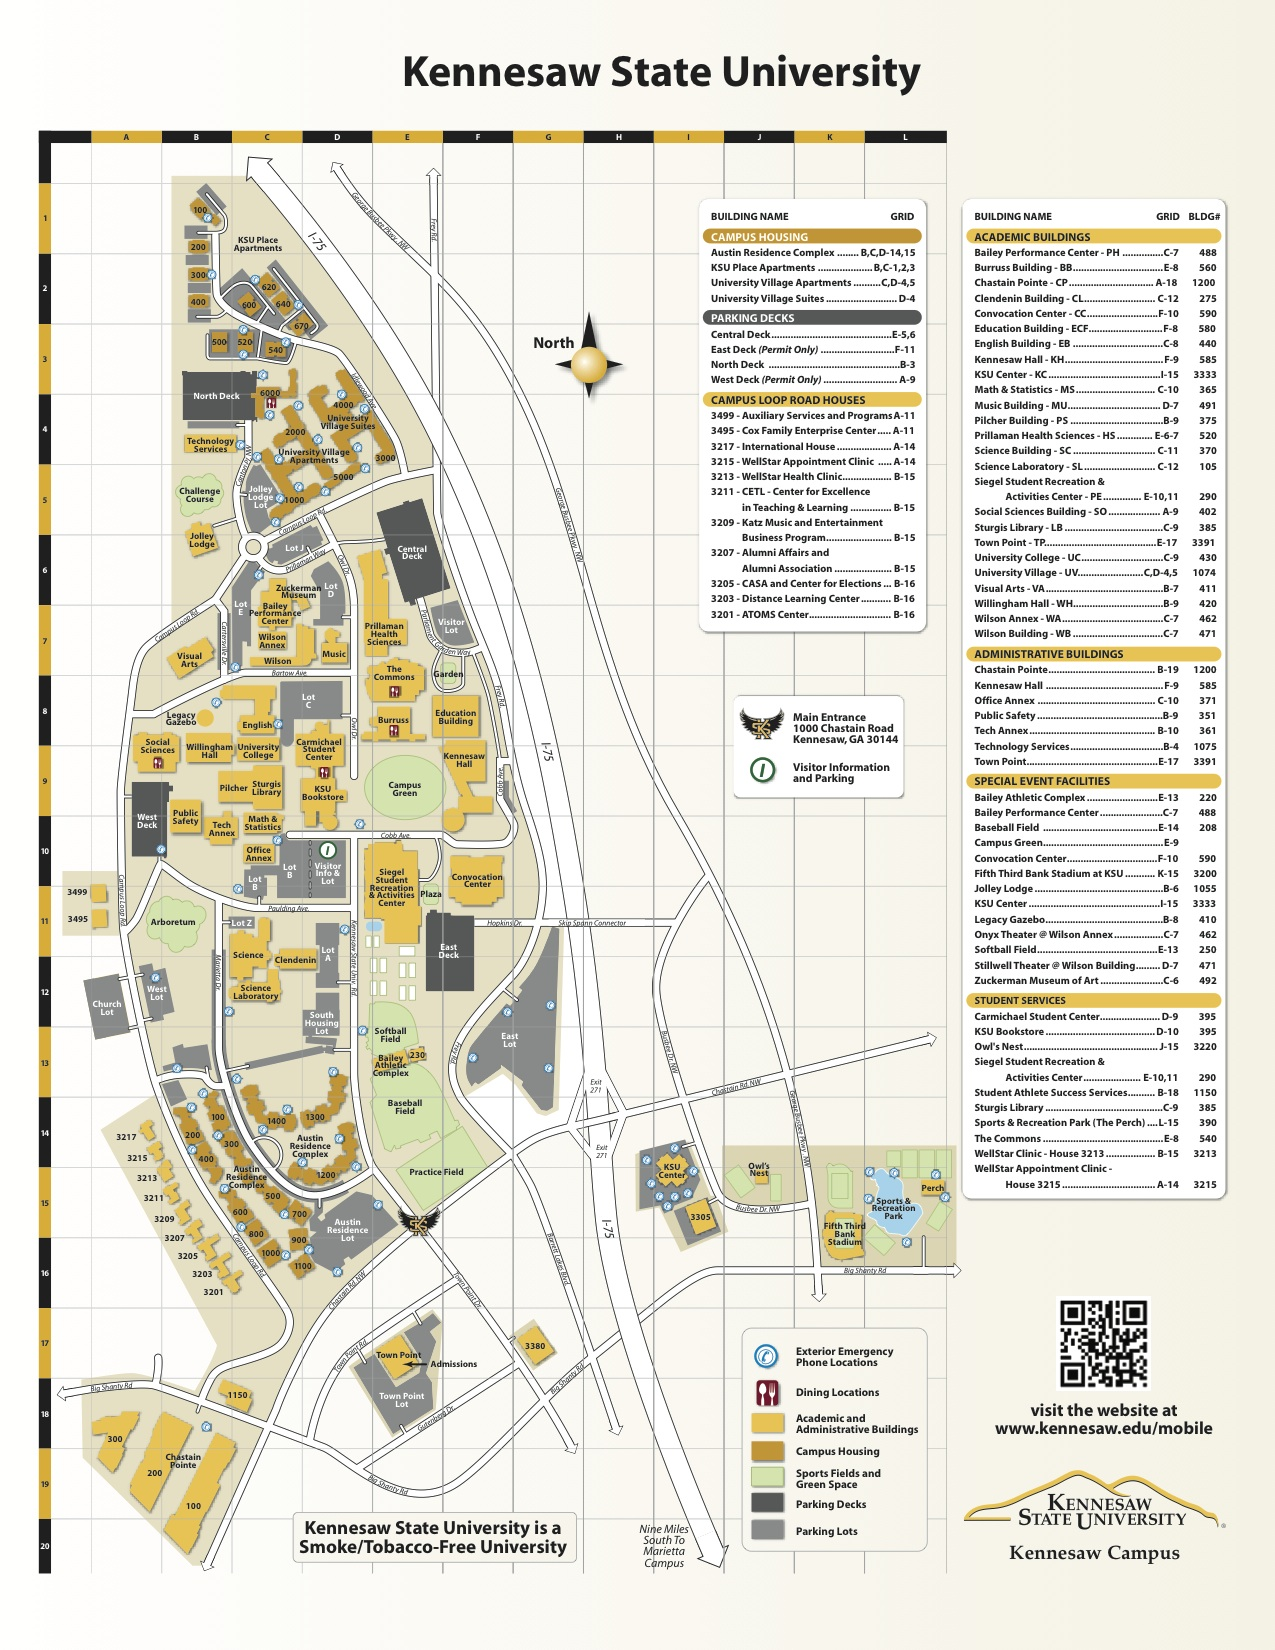 Kennesaw State Map | World Map 07 on kennesaw state university map, wright state lake campus map, csc campus map, wichita state university campus map, kent state campus map, bemidji state university campus map, emporia state university campus map, louisiana state university campus map, adams state university campus map, kennesaw state campus map, kysu campus map, nsc campus map, ash campus map, msm campus map, ferris state university campus map, kansas state campus map, murray state university campus map, chs campus map, k-state map, kentucky state university map,